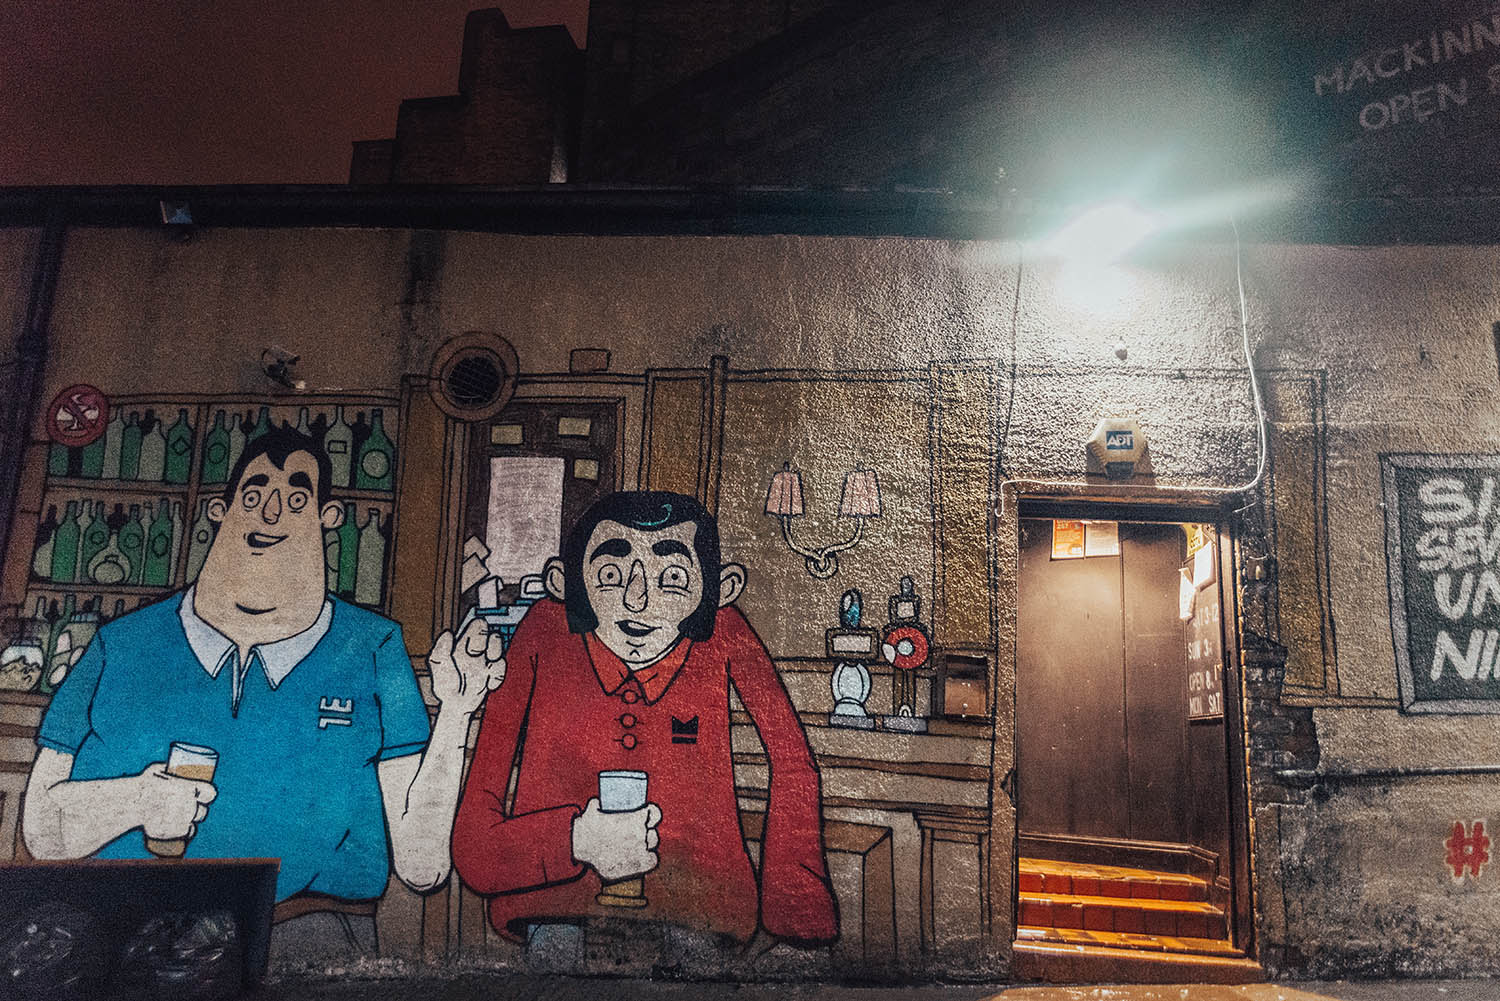 Street Art in Glasgow - by night